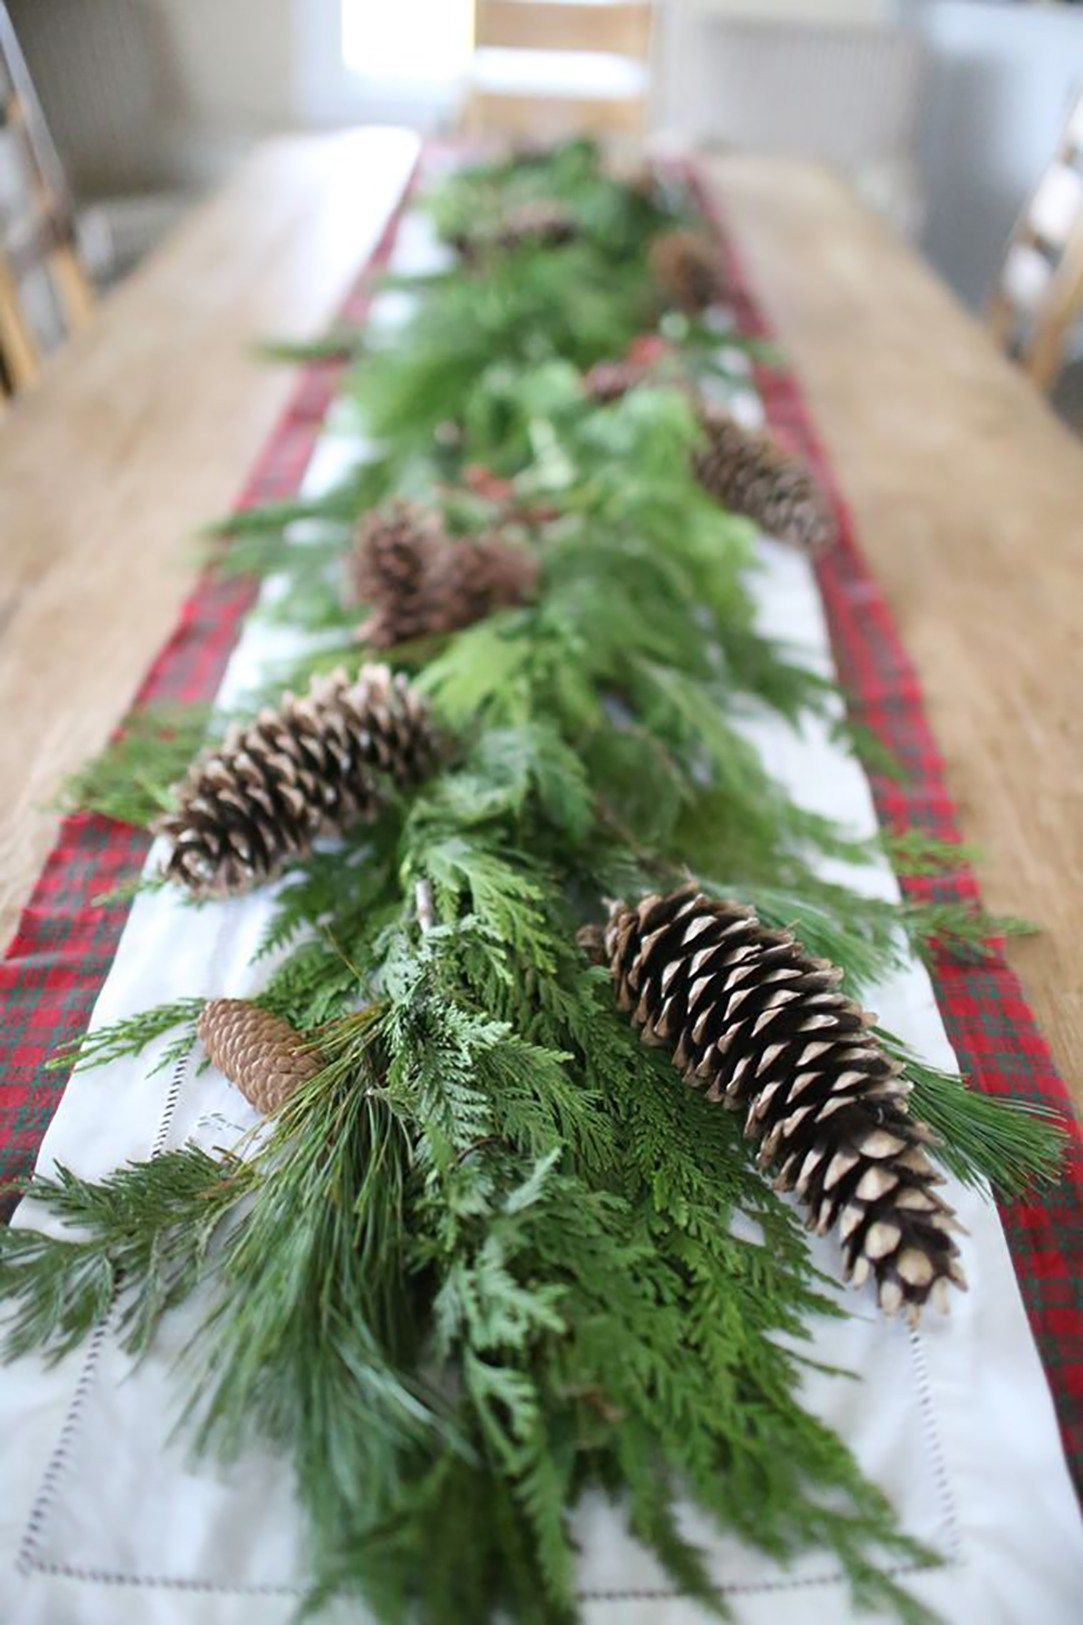 10 Christmas Table Ideas Simple Pine Runner With Pinecones Christmasweddingideas Christmas Greenery Christmas Table Decorations Christmas Centerpieces